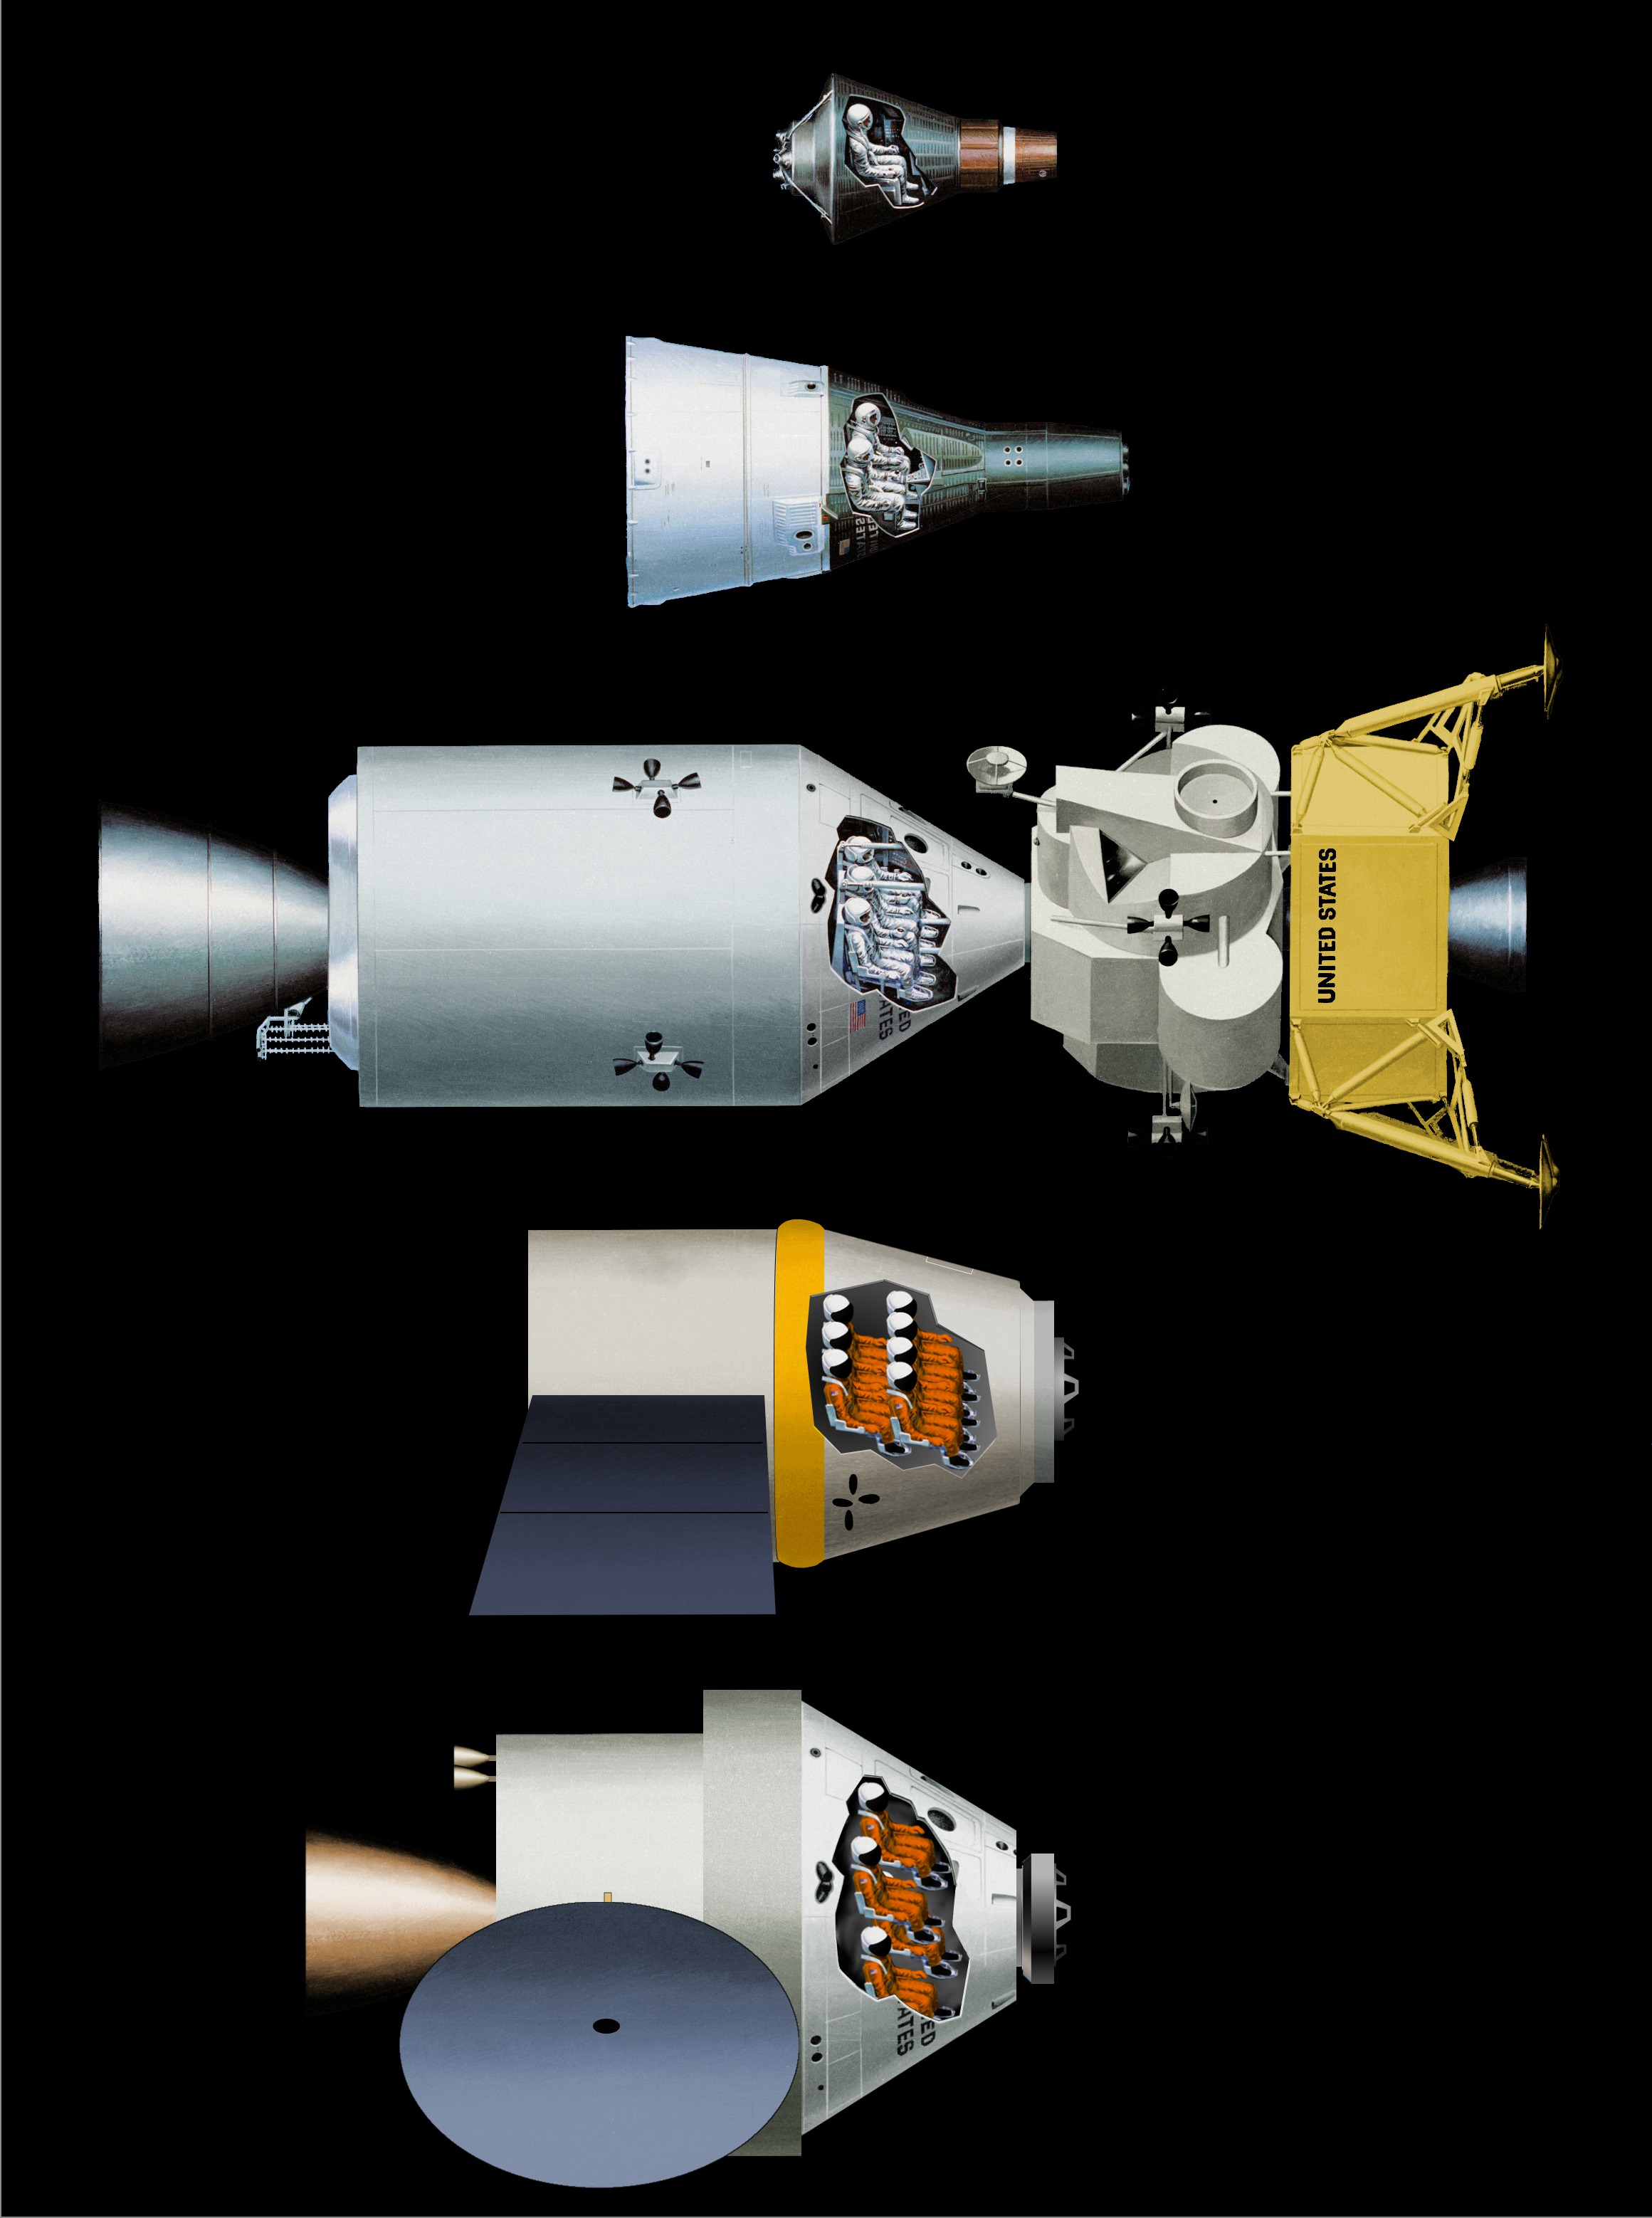 Types of Spacecraft's (page 5) - Pics about space